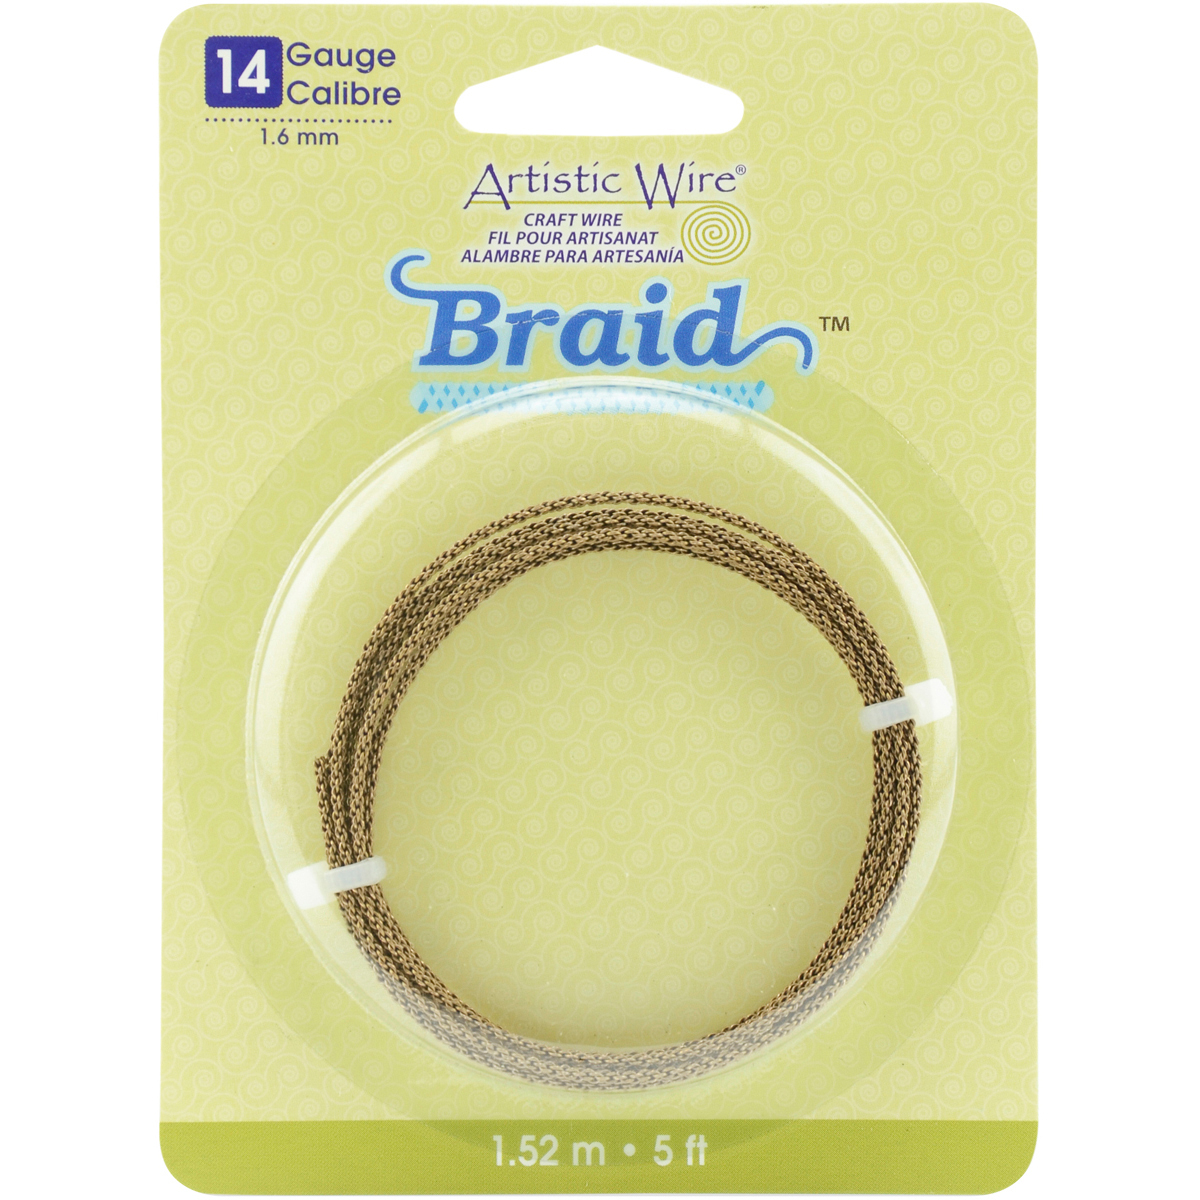 Artistic Wire Braid-Antique Brass 14 Gauge 5'